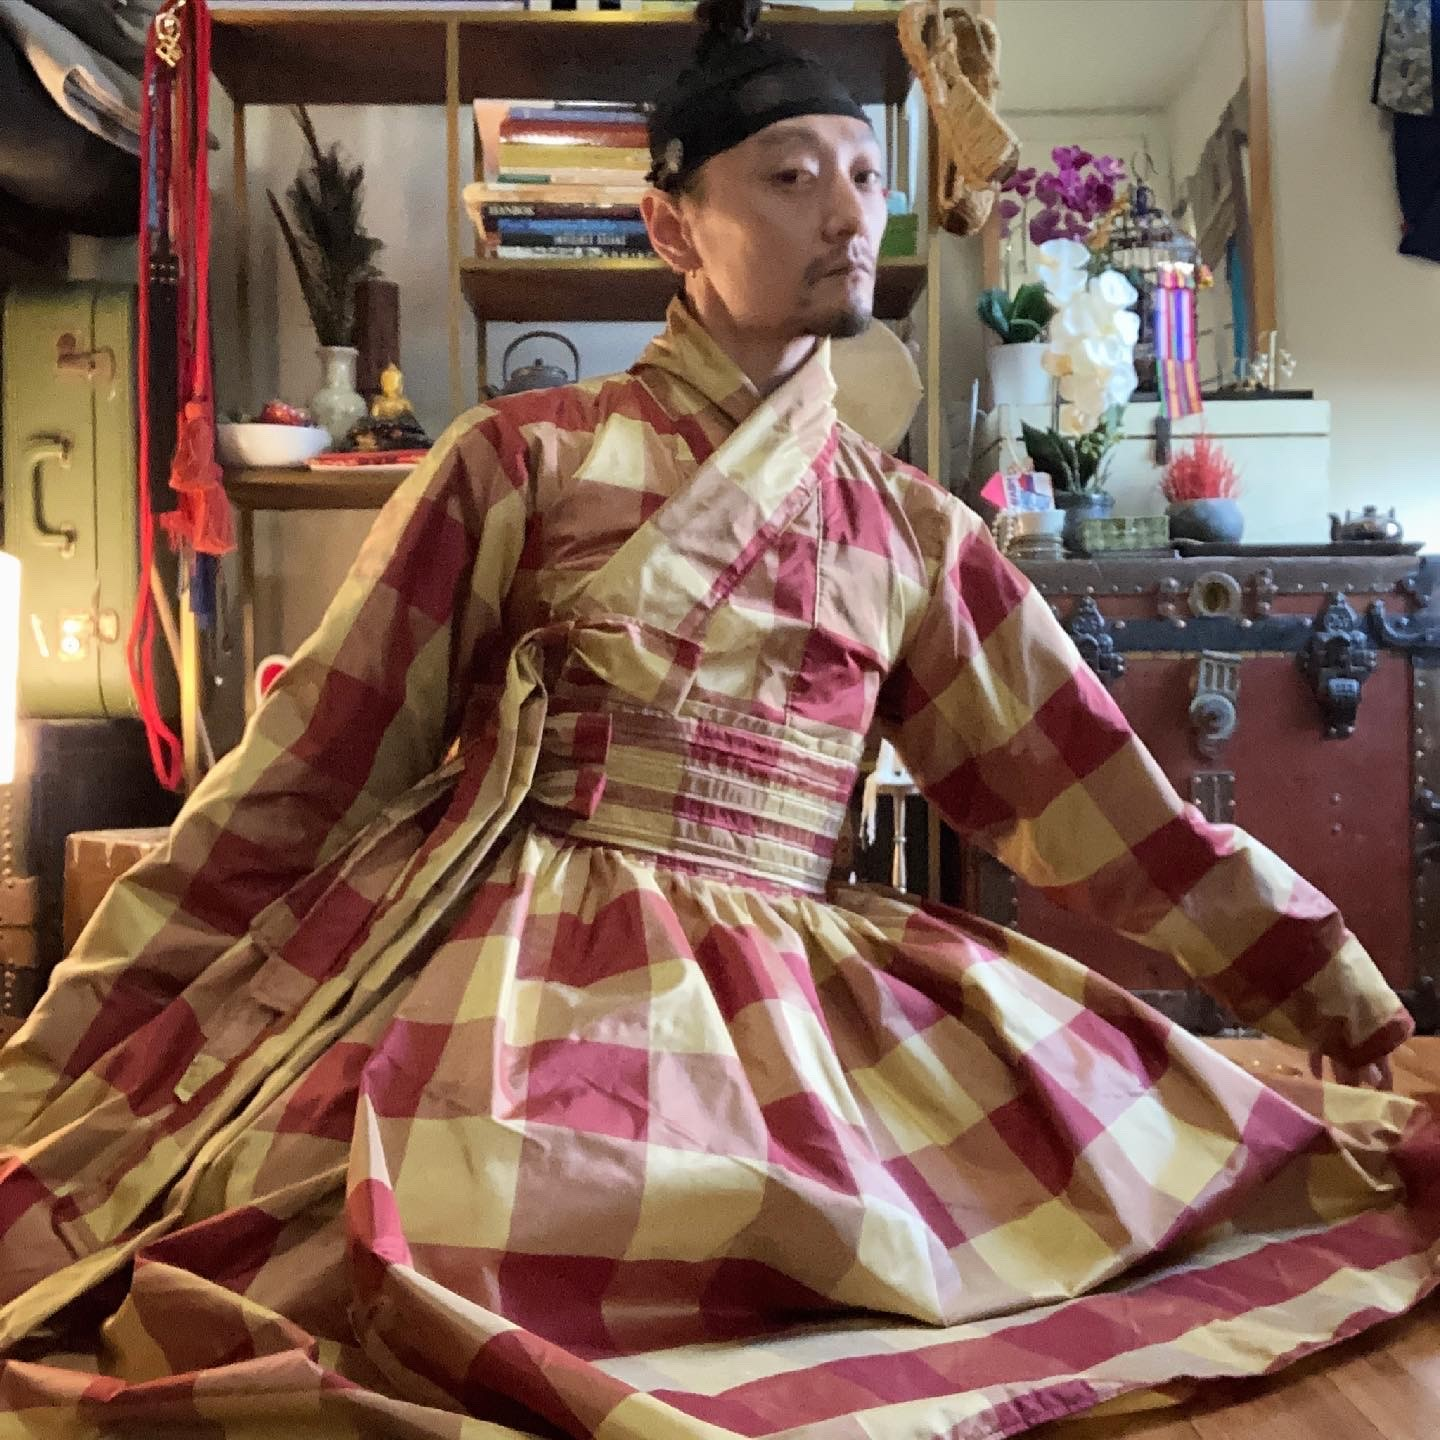 @yang_cheon_shik in plaid hanbok, seated on the floor of an interior space with Asian-inspired decor.